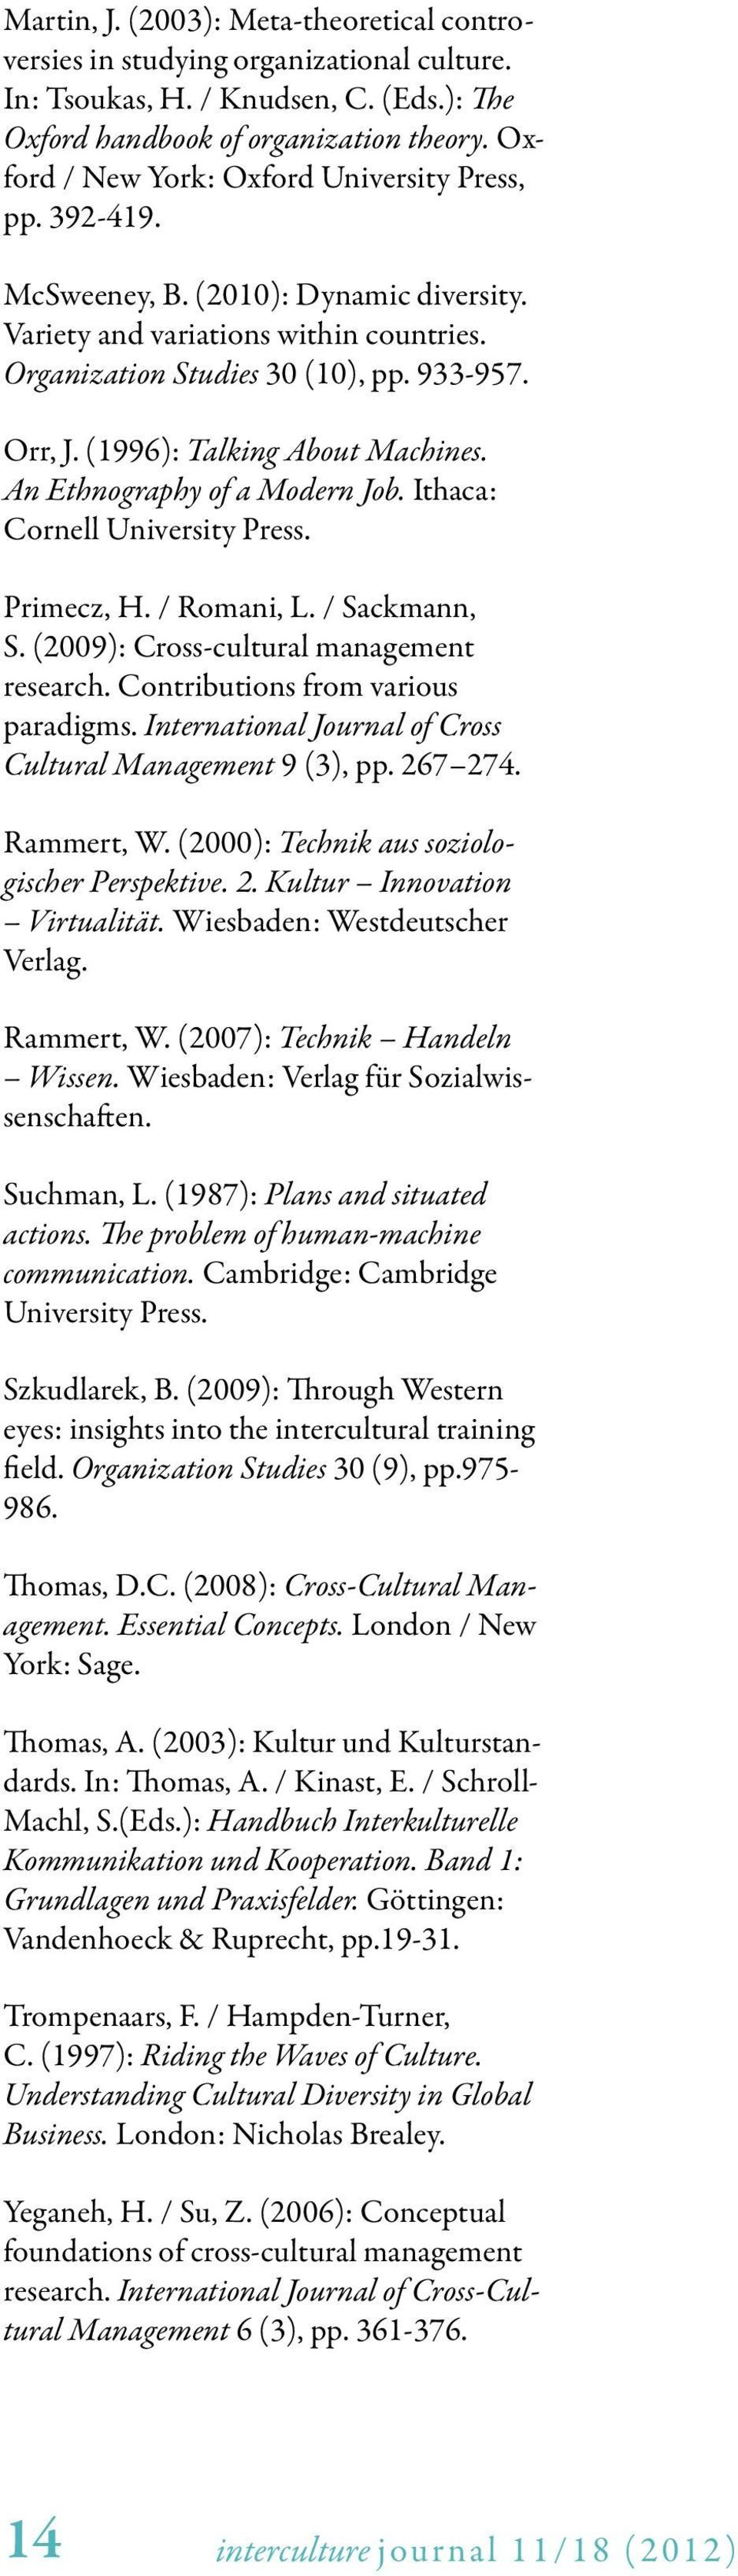 (1996): Talking About Machines. An Ethnography of a Modern Job. Ithaca: Cornell University Press. Primecz, H. / Romani, L. / Sackmann, S. (2009): Cross-cultural management research.